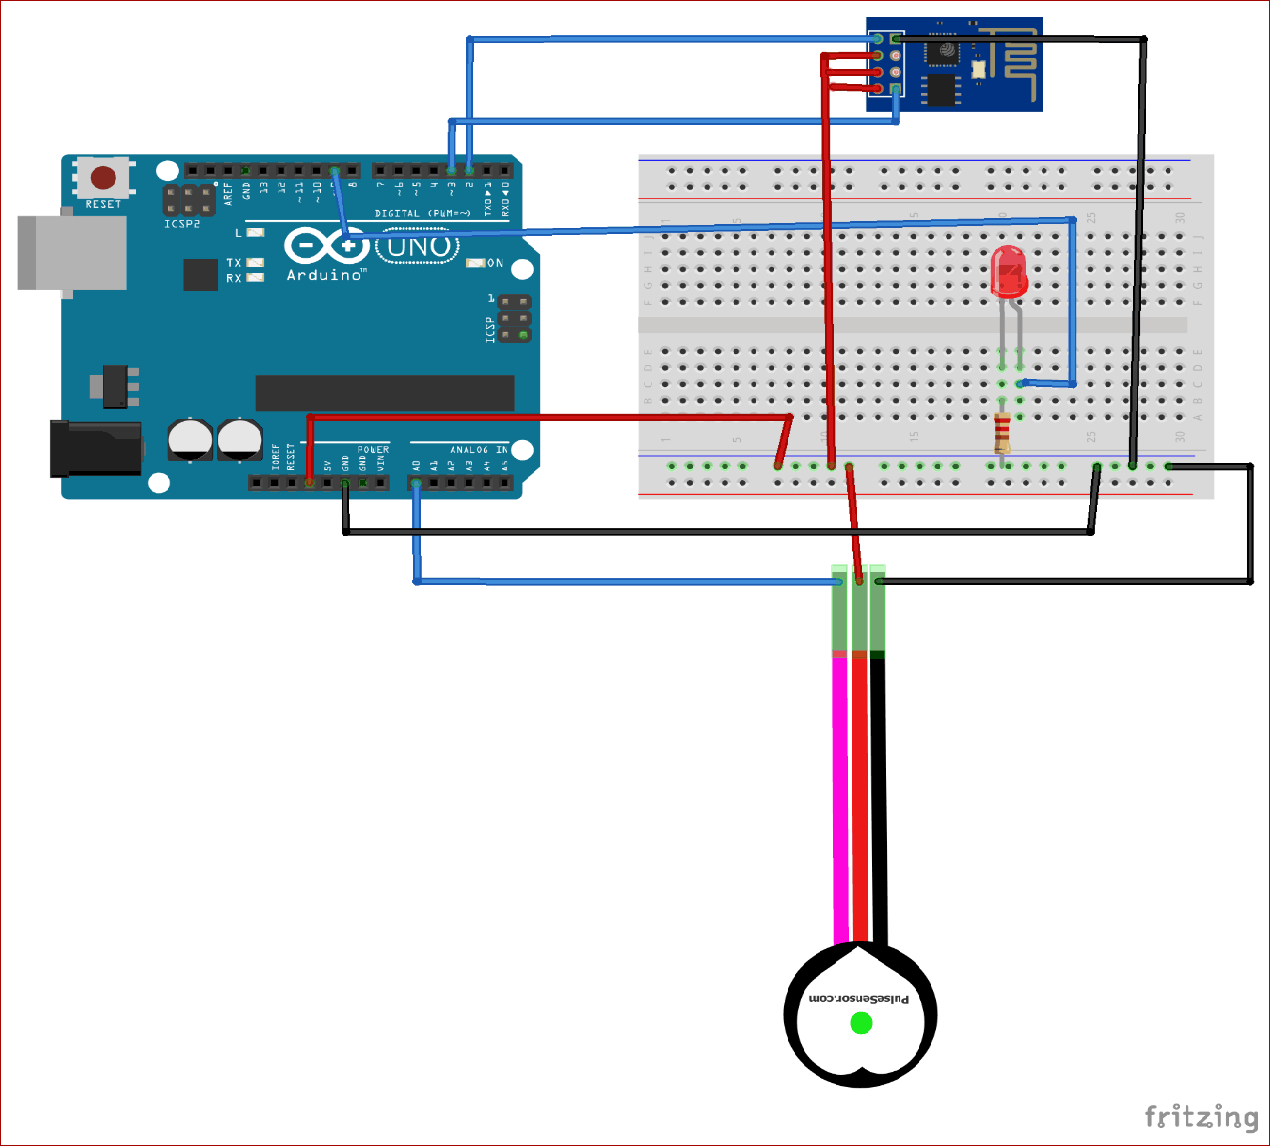 IoT Based Heart Rate Monitor using Arduino and ESP8266